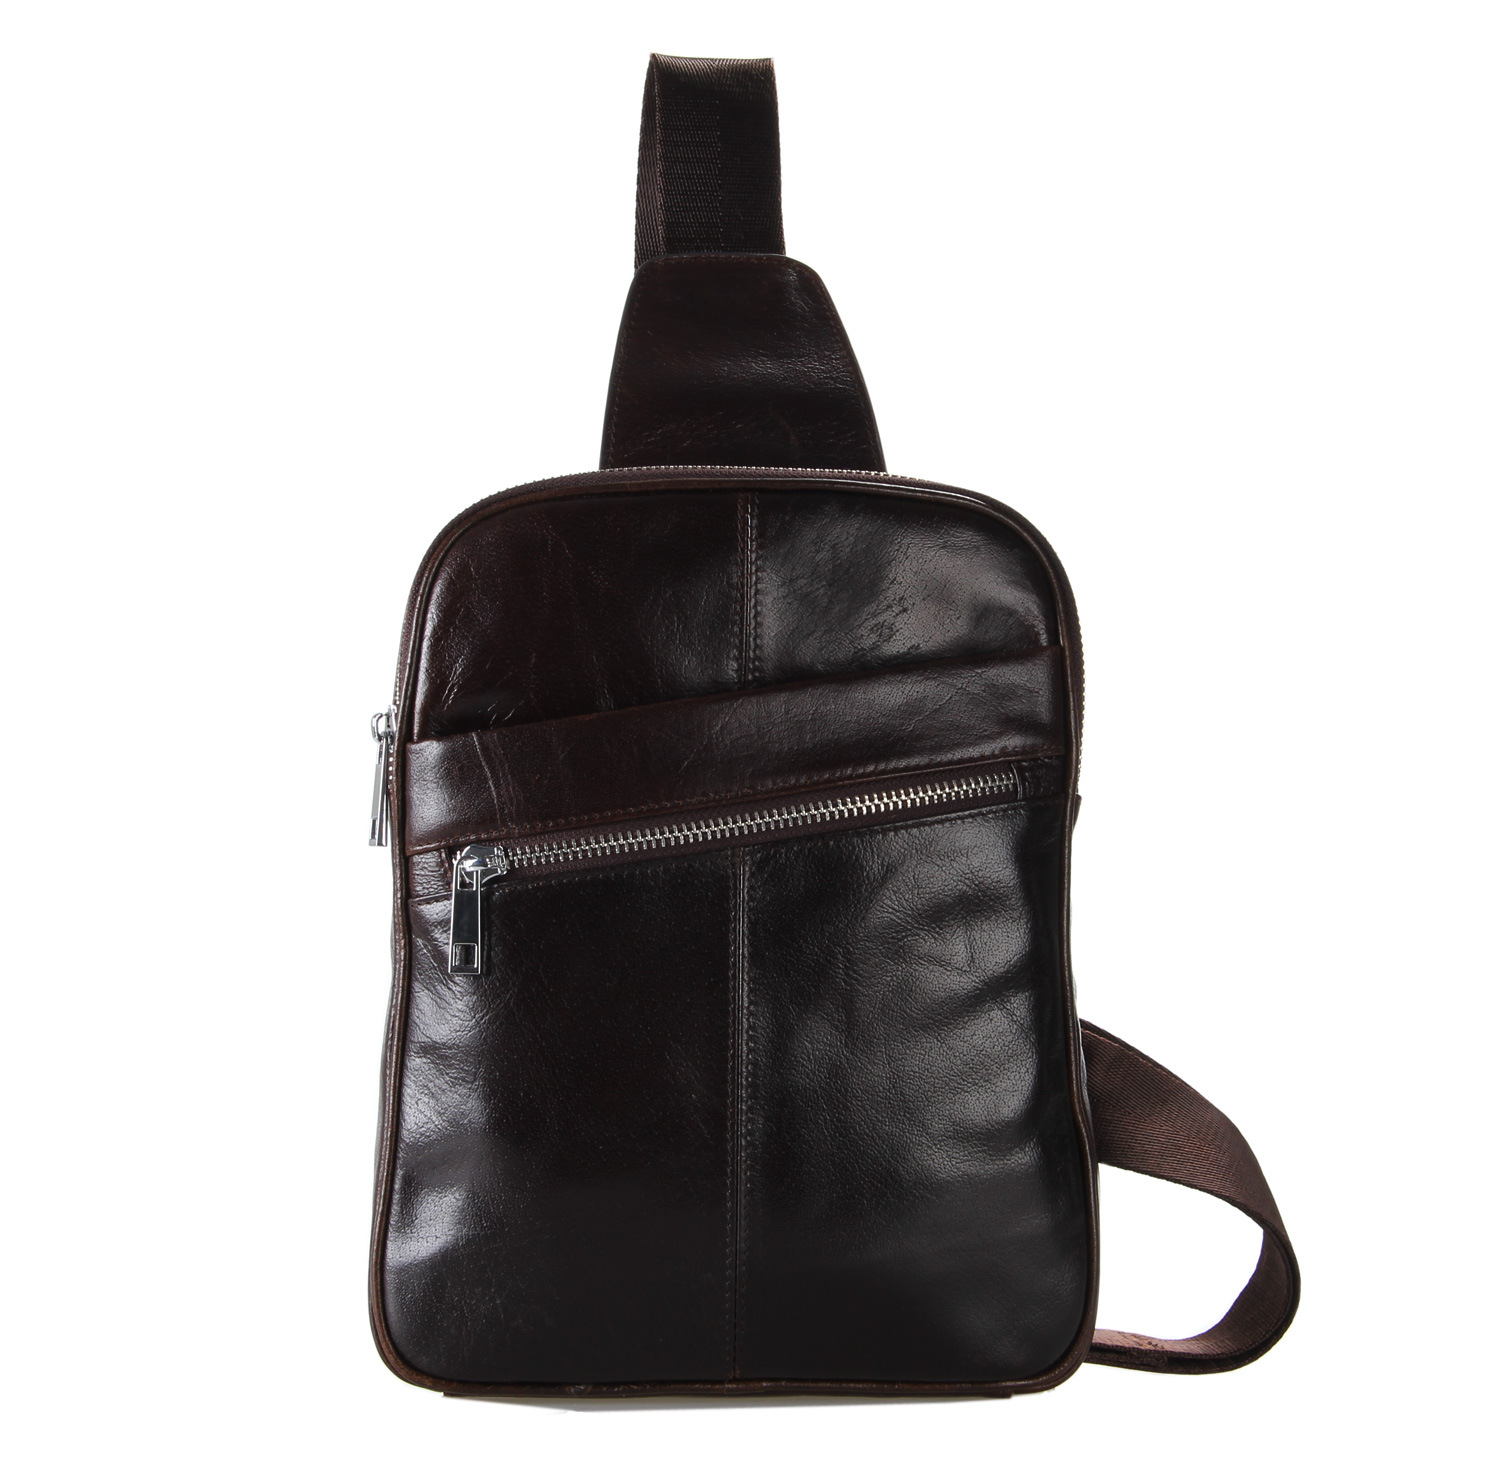 Leather Men's Casual Chest Pack High-grade Leather messenger bags genuine leather shoulder bag 7217c